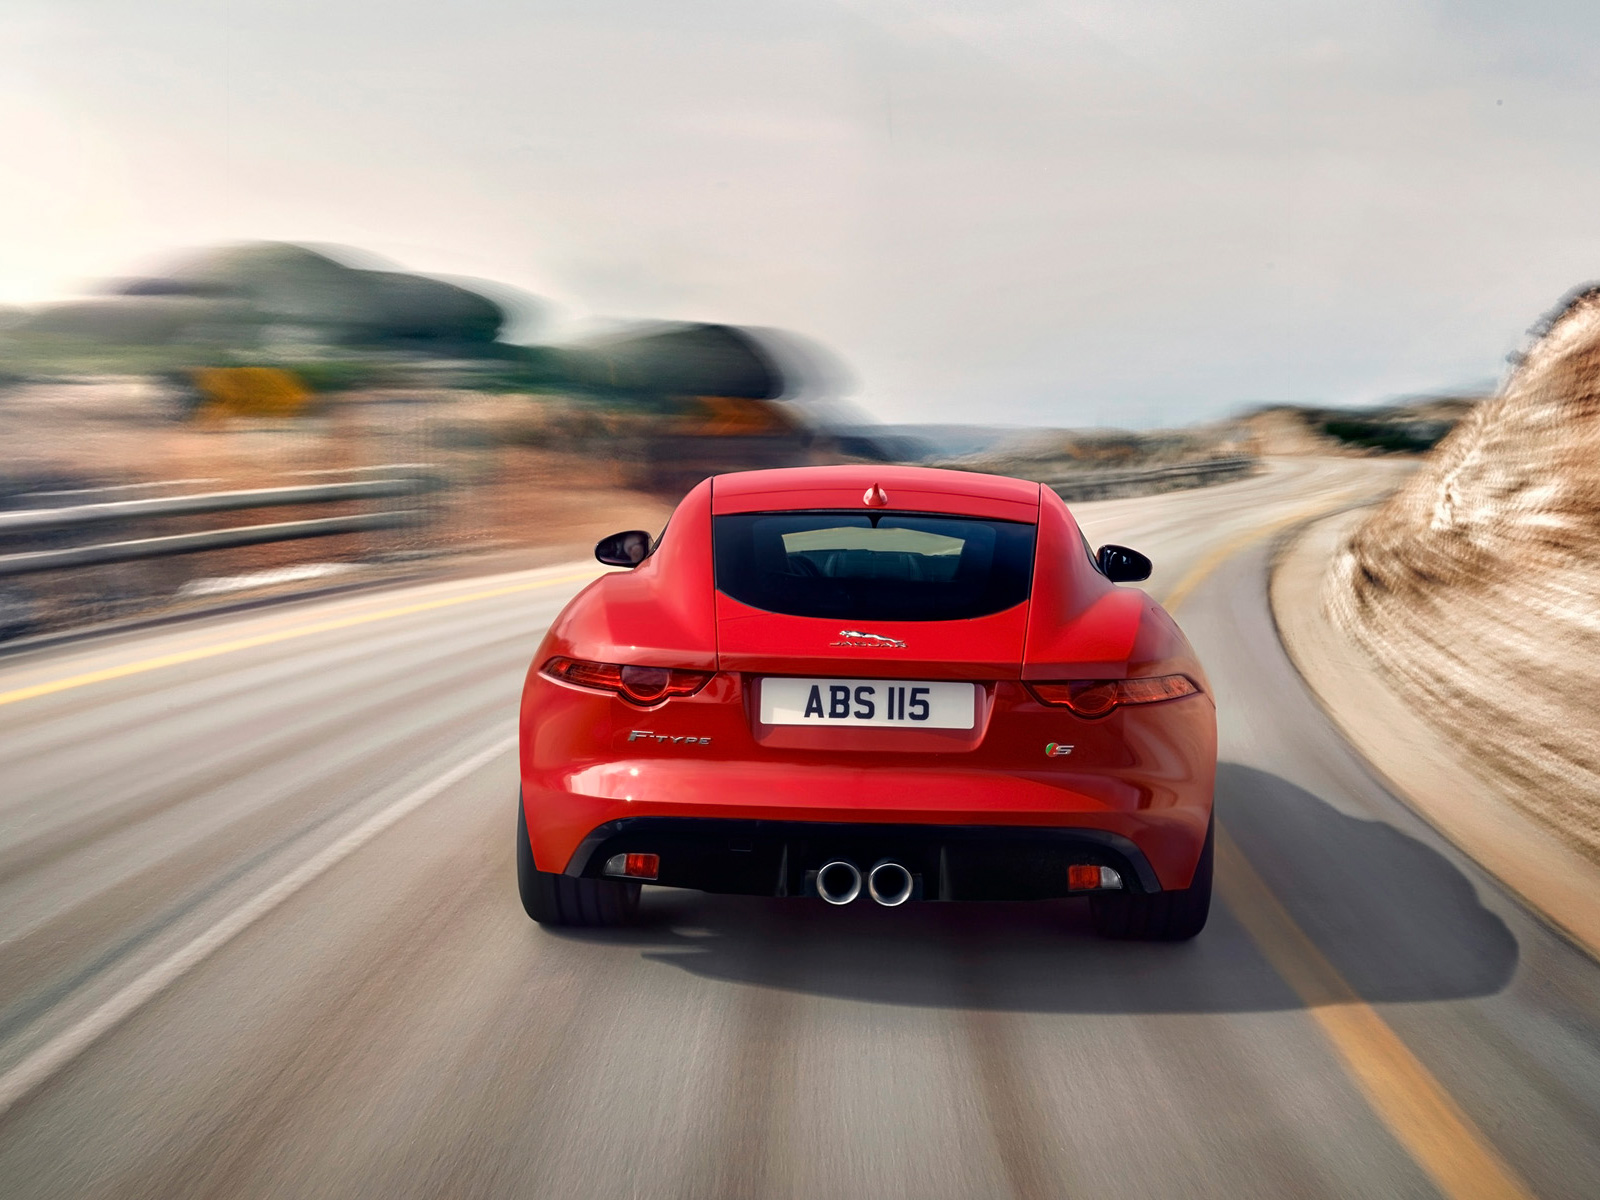 At Cruising Speeds, The Valves Close, Retaining A Powerful Exhaust Note  With Comfortable Sound Levels. Visually, The 2014 Jaguar F Type ...